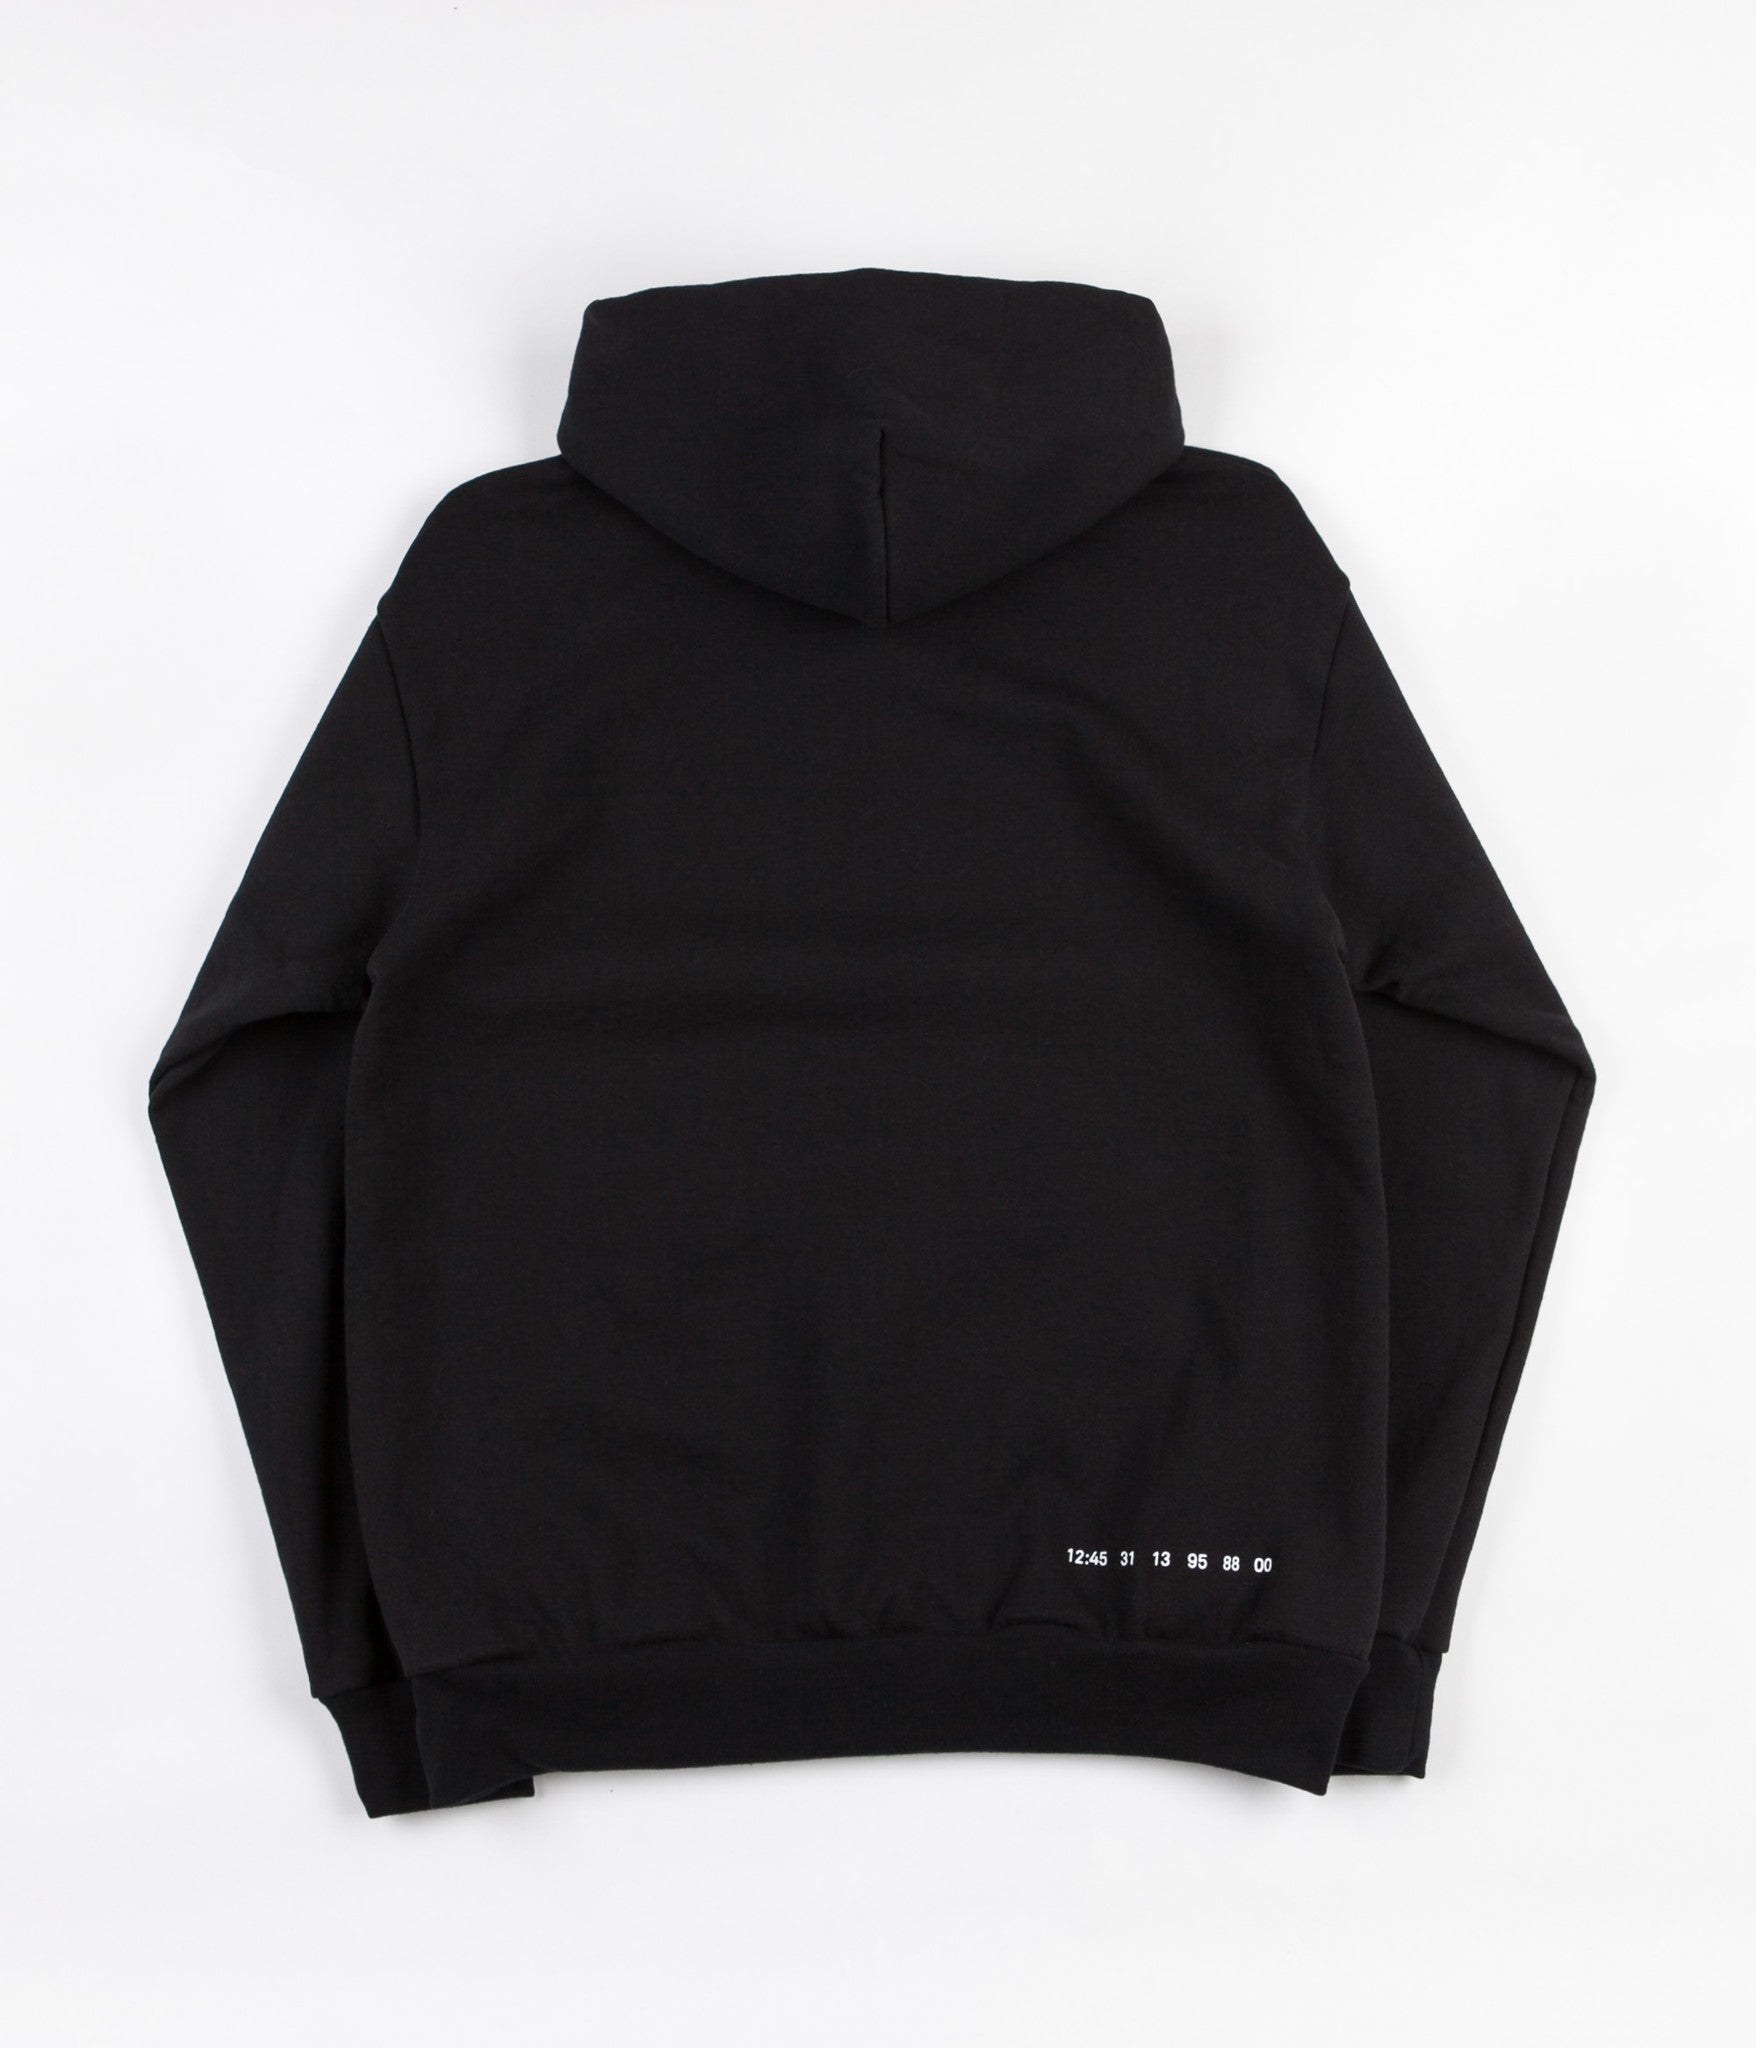 Numbers Wordmark Hooded Sweatshirt - Black